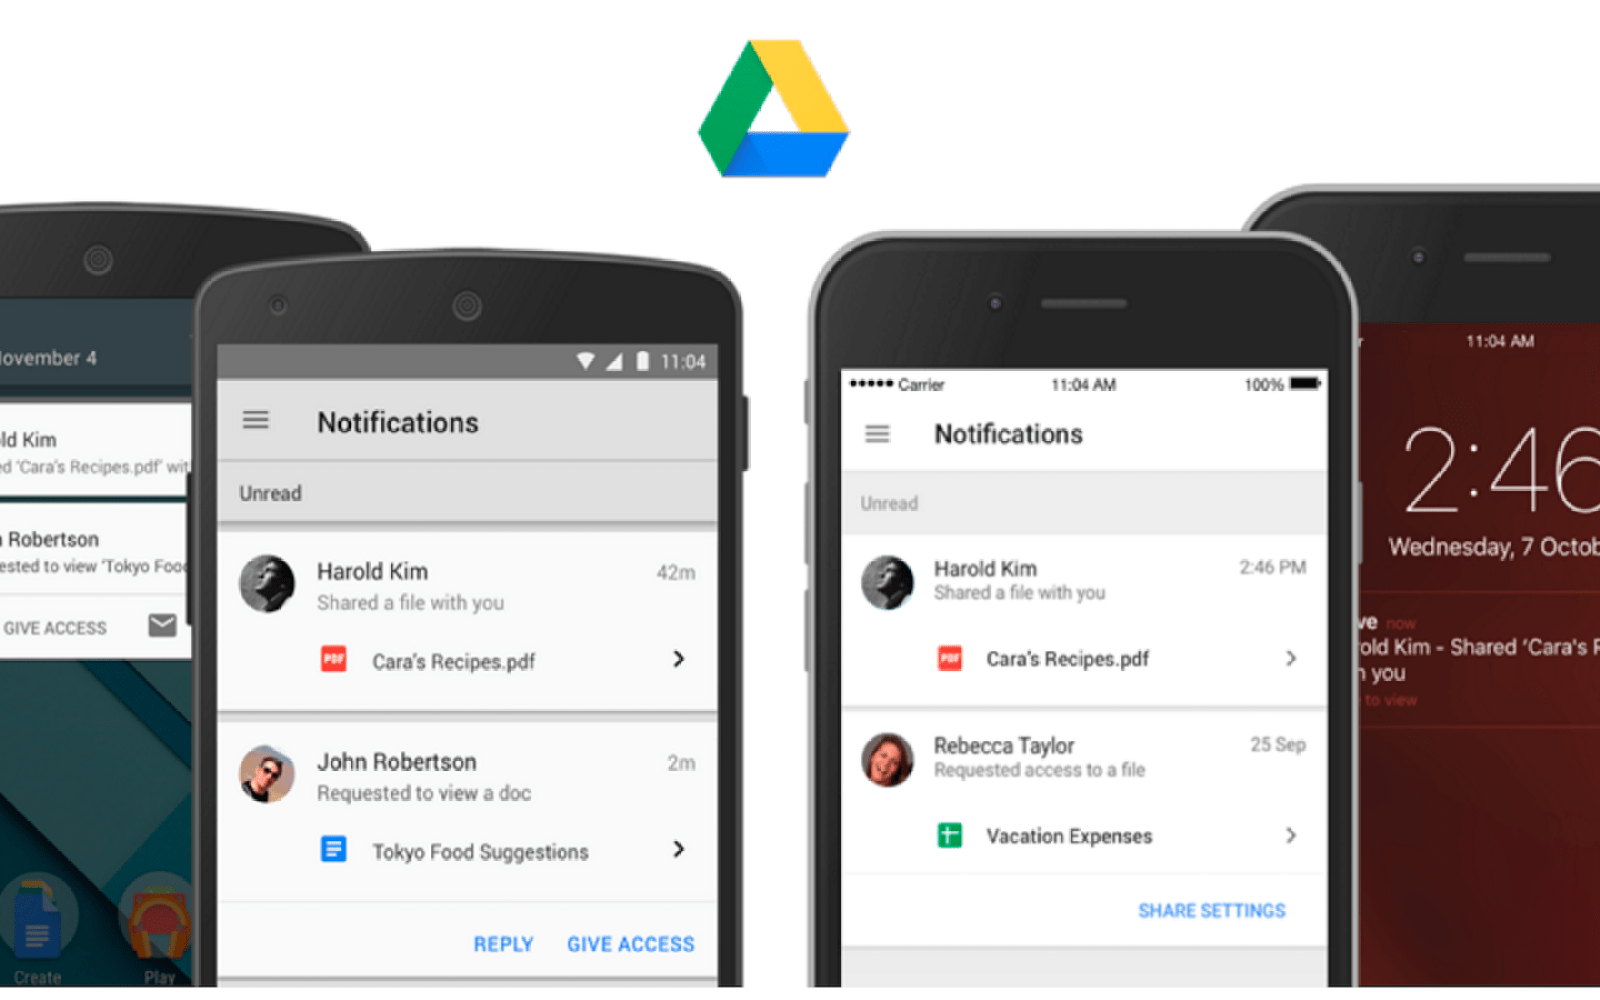 Google Drive Apps Add Support For Templates On Android And IOS - Google apps templates